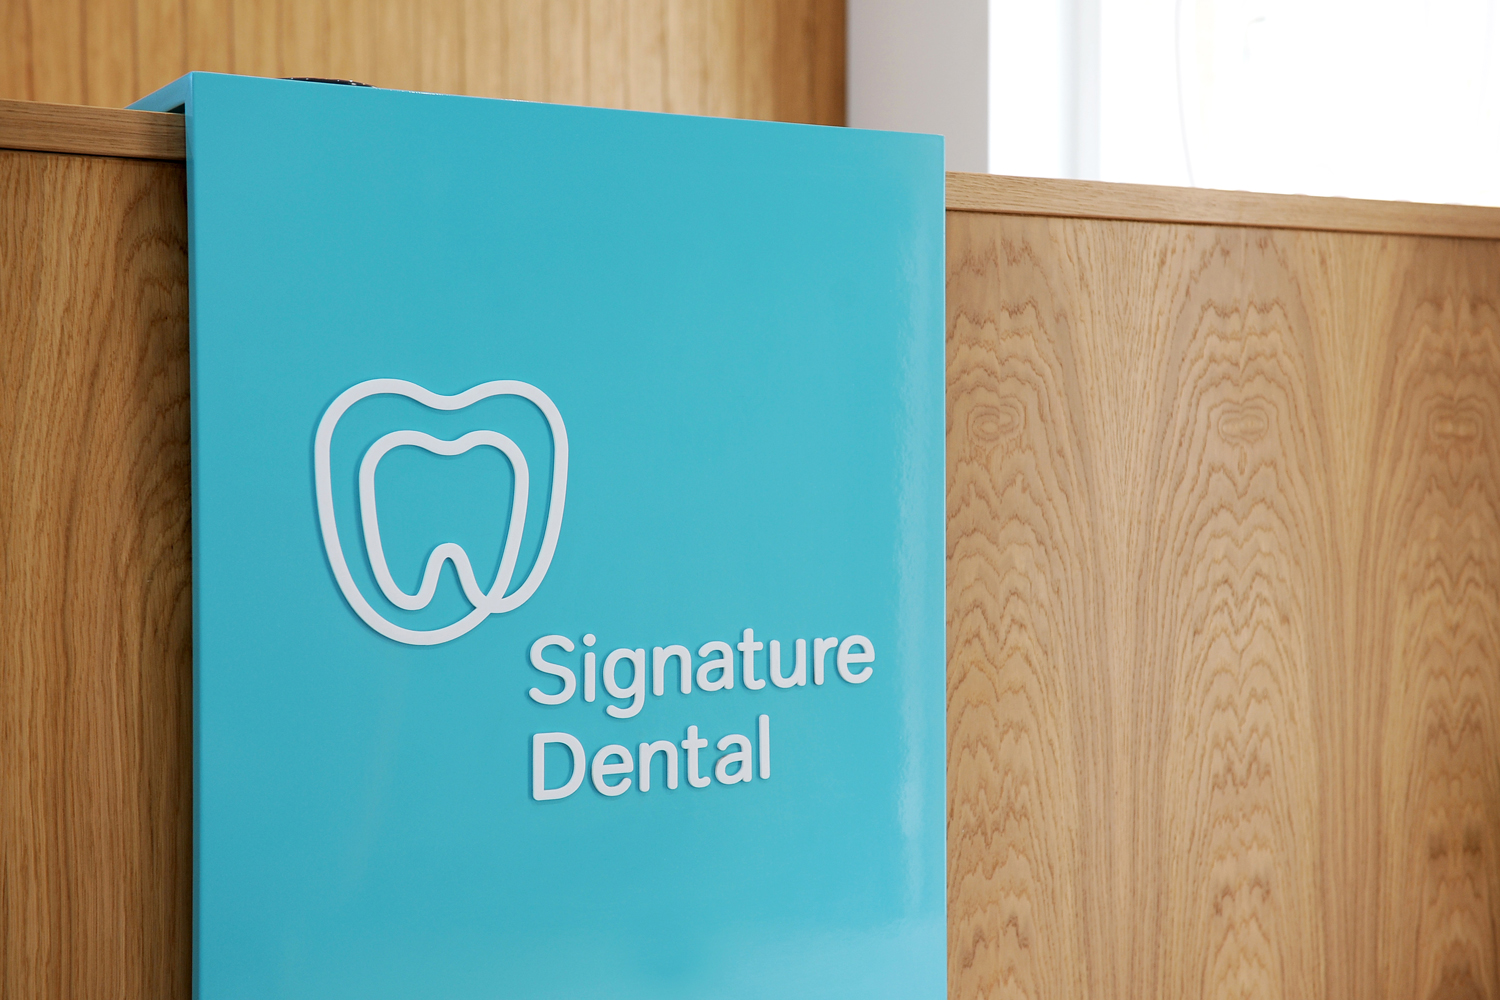 Signature Dental 品牌标识设计©2point3